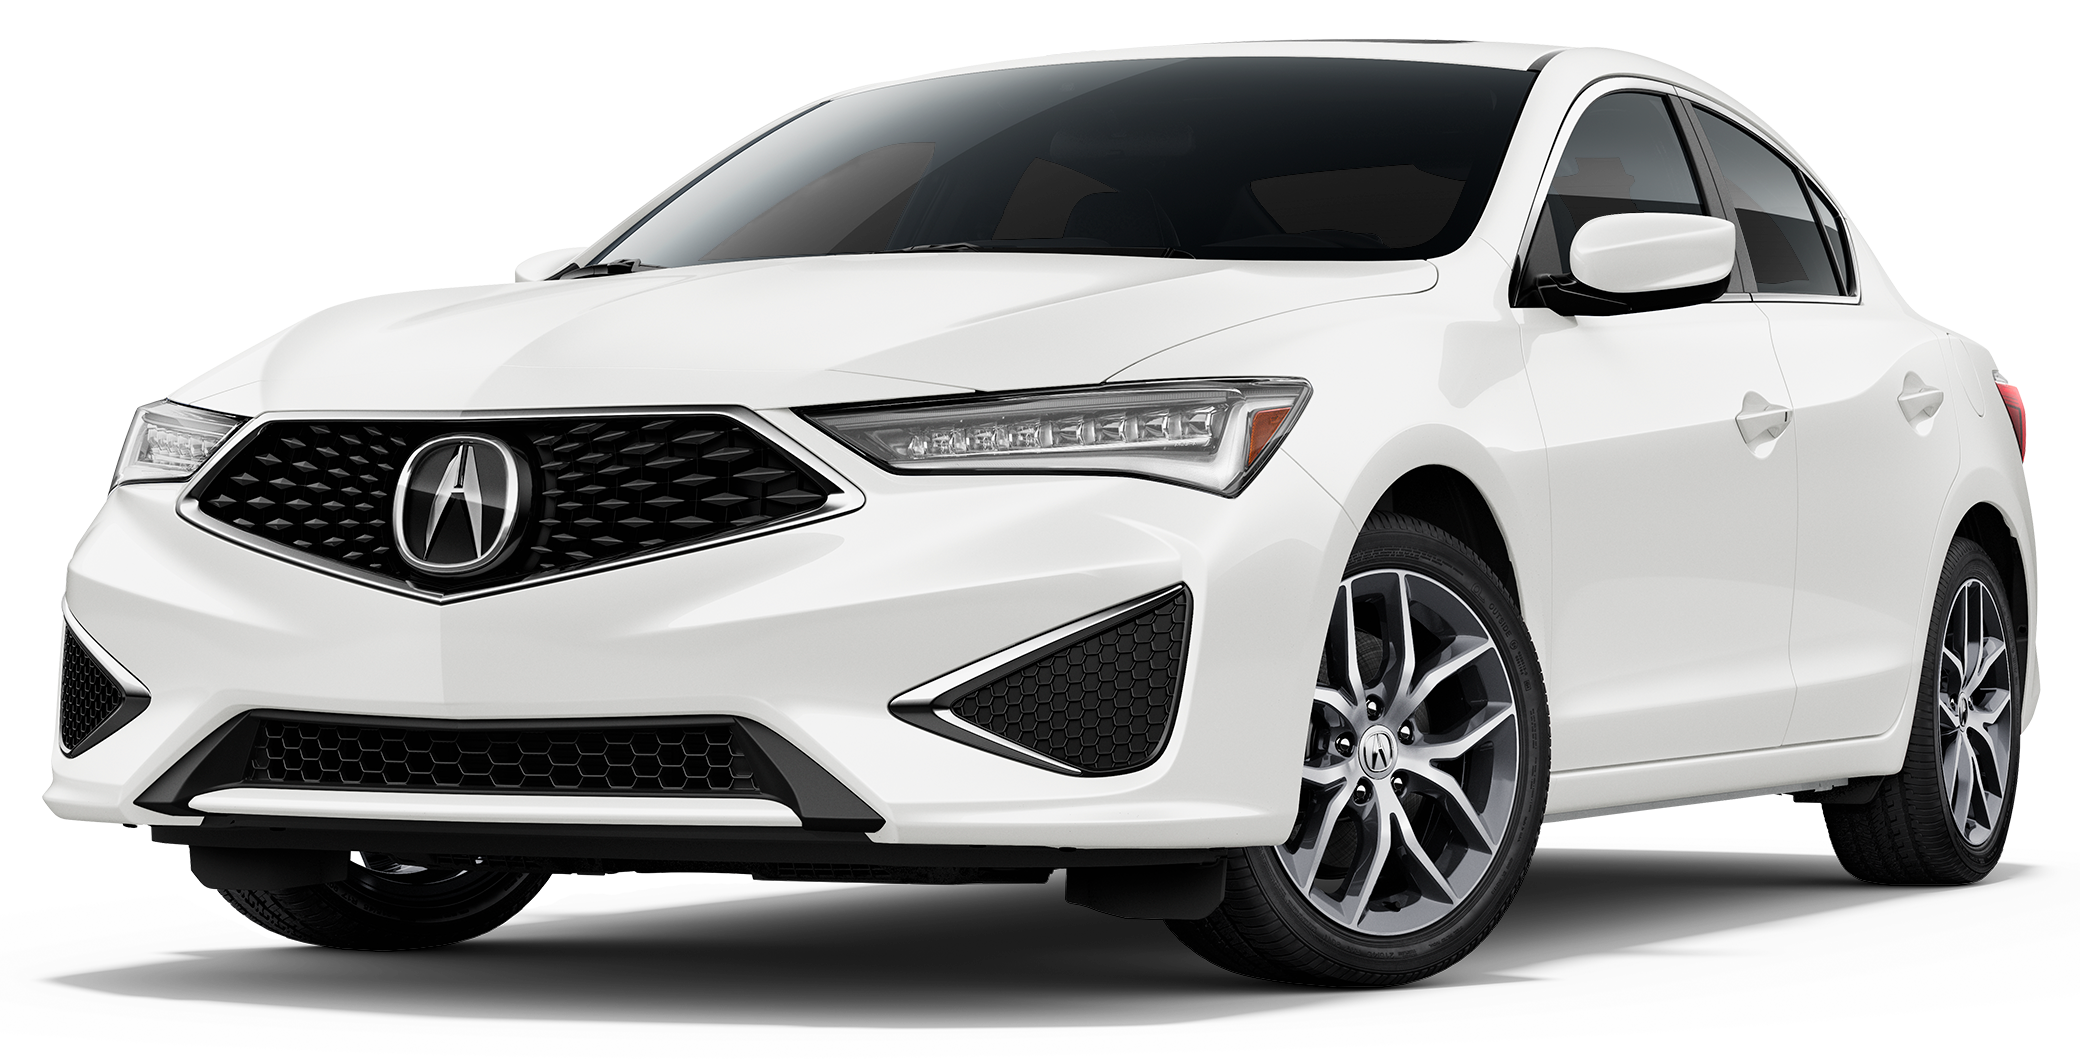 http://images.dealer.com/ddc/vehicles/2019/Acura/ILX/Sedan/trim_Premium_Package_82586d/perspective/front-left/2019_76.png